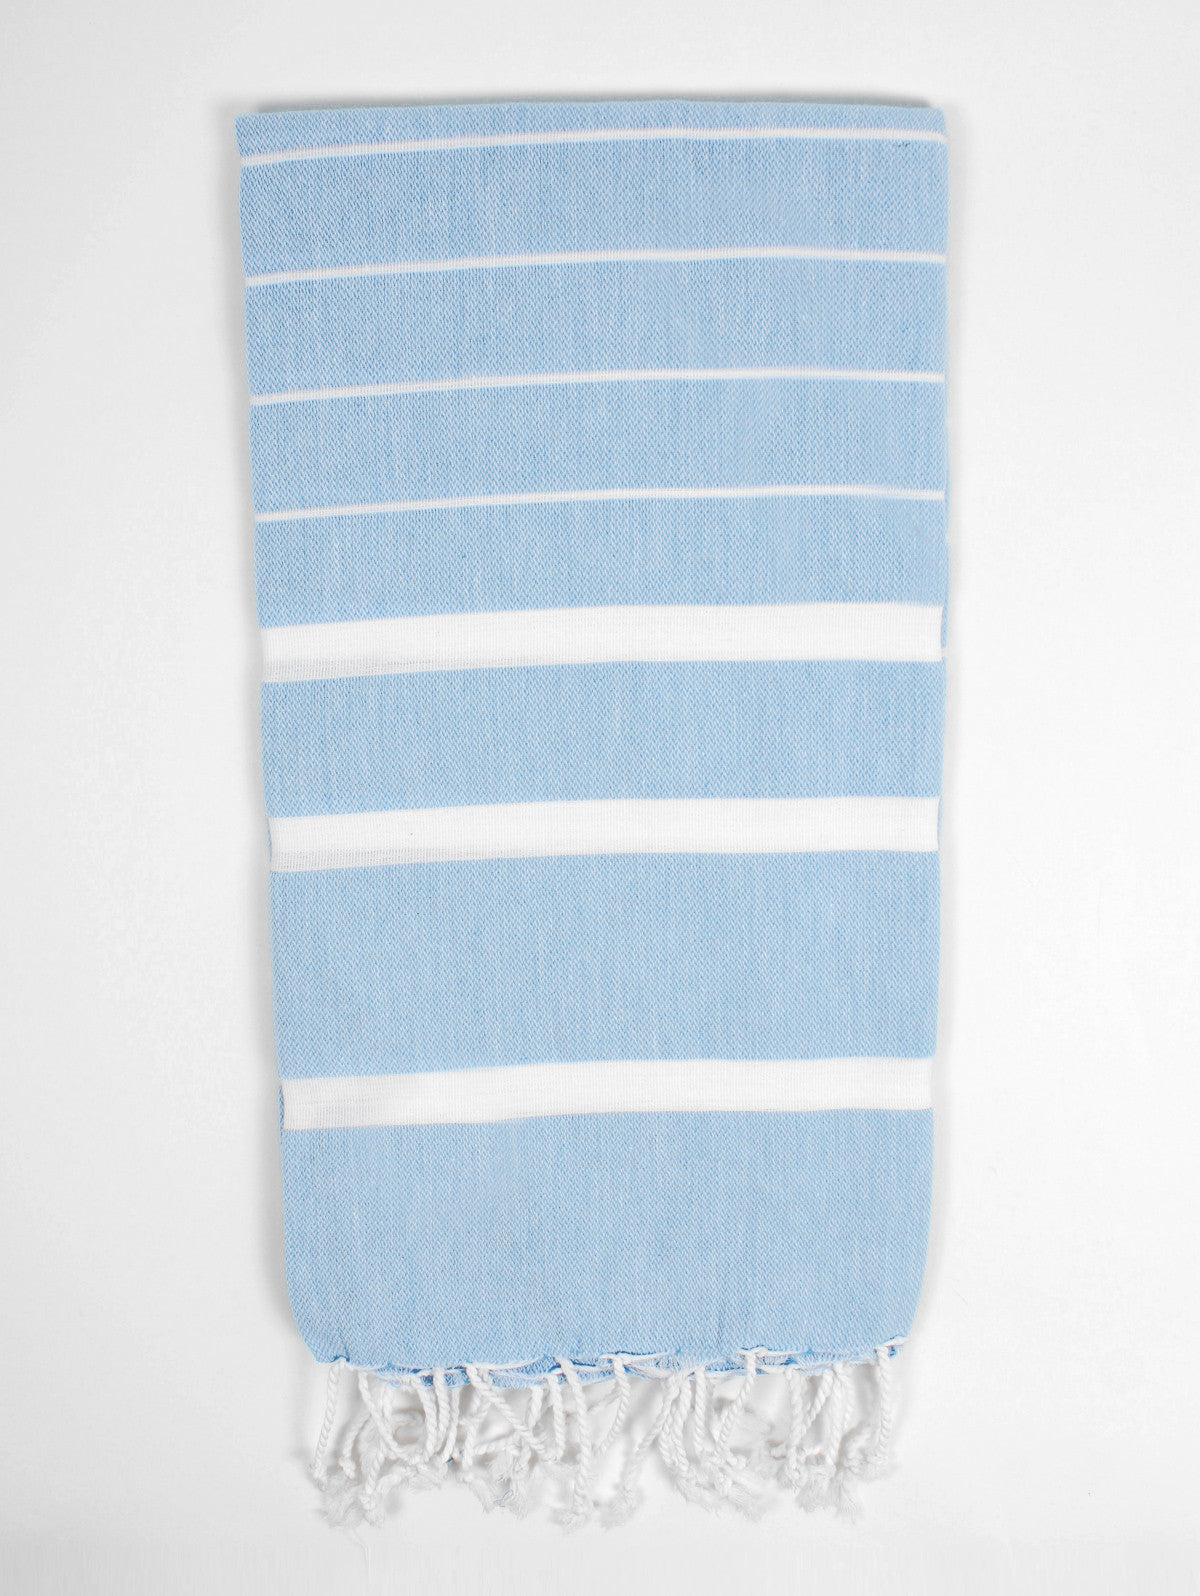 Ibiza Summer Hammam Towel, Ice Blue